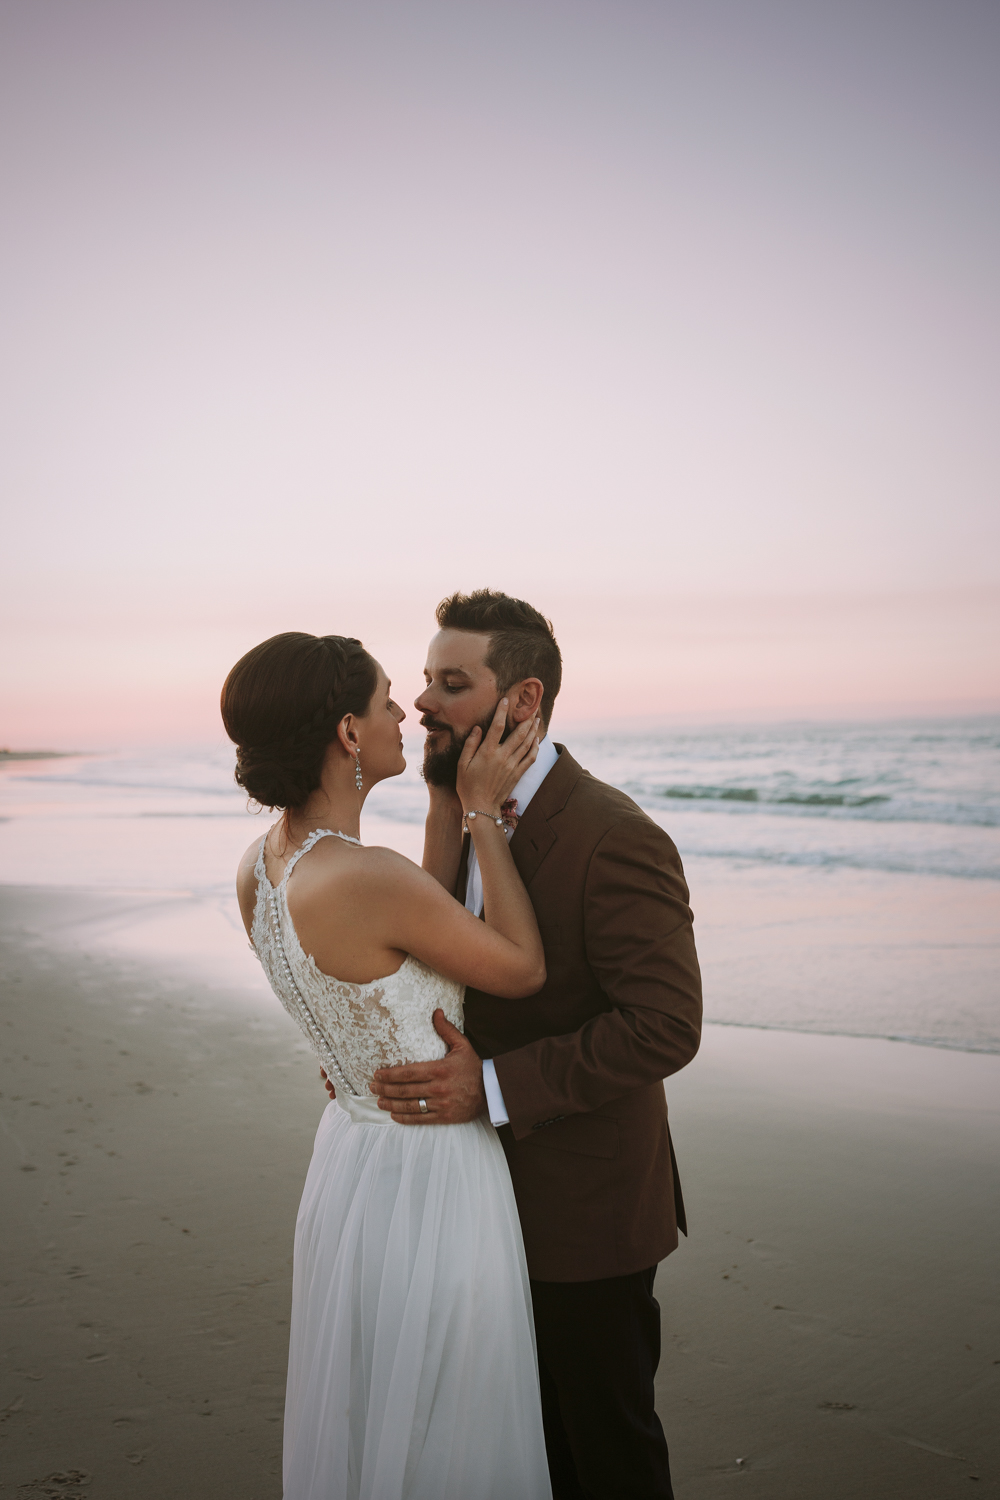 bride-groom-sunset-beach-wedding-siida-photography-stradbroke-island.jpg